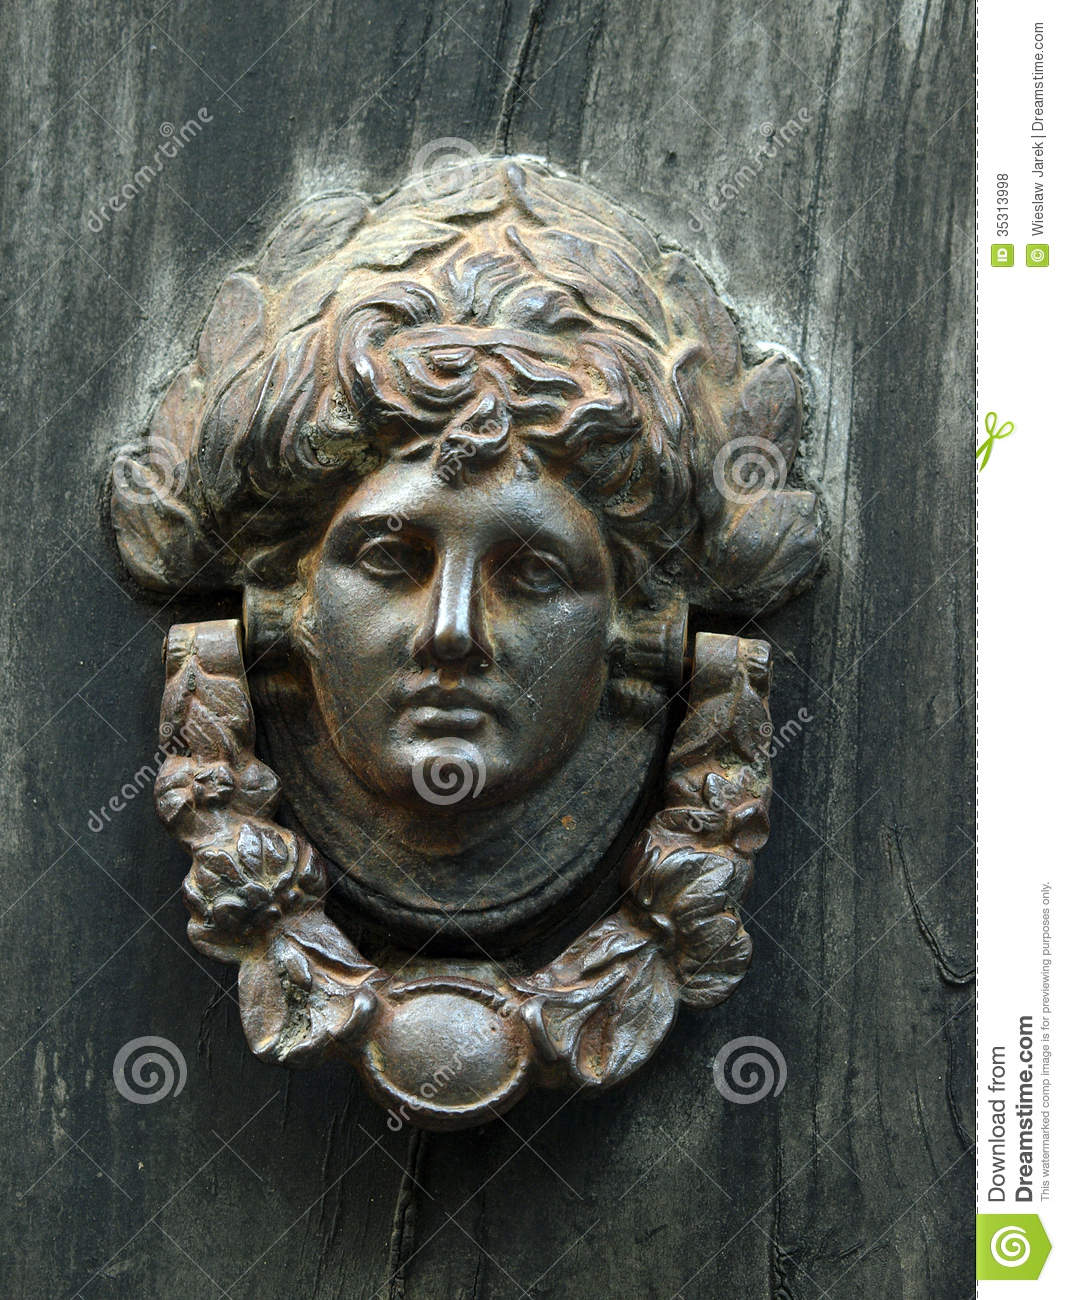 An Antique Door Knocker - An Antique Door Knocker Stock Photo. Image Of Luxury - 35313998